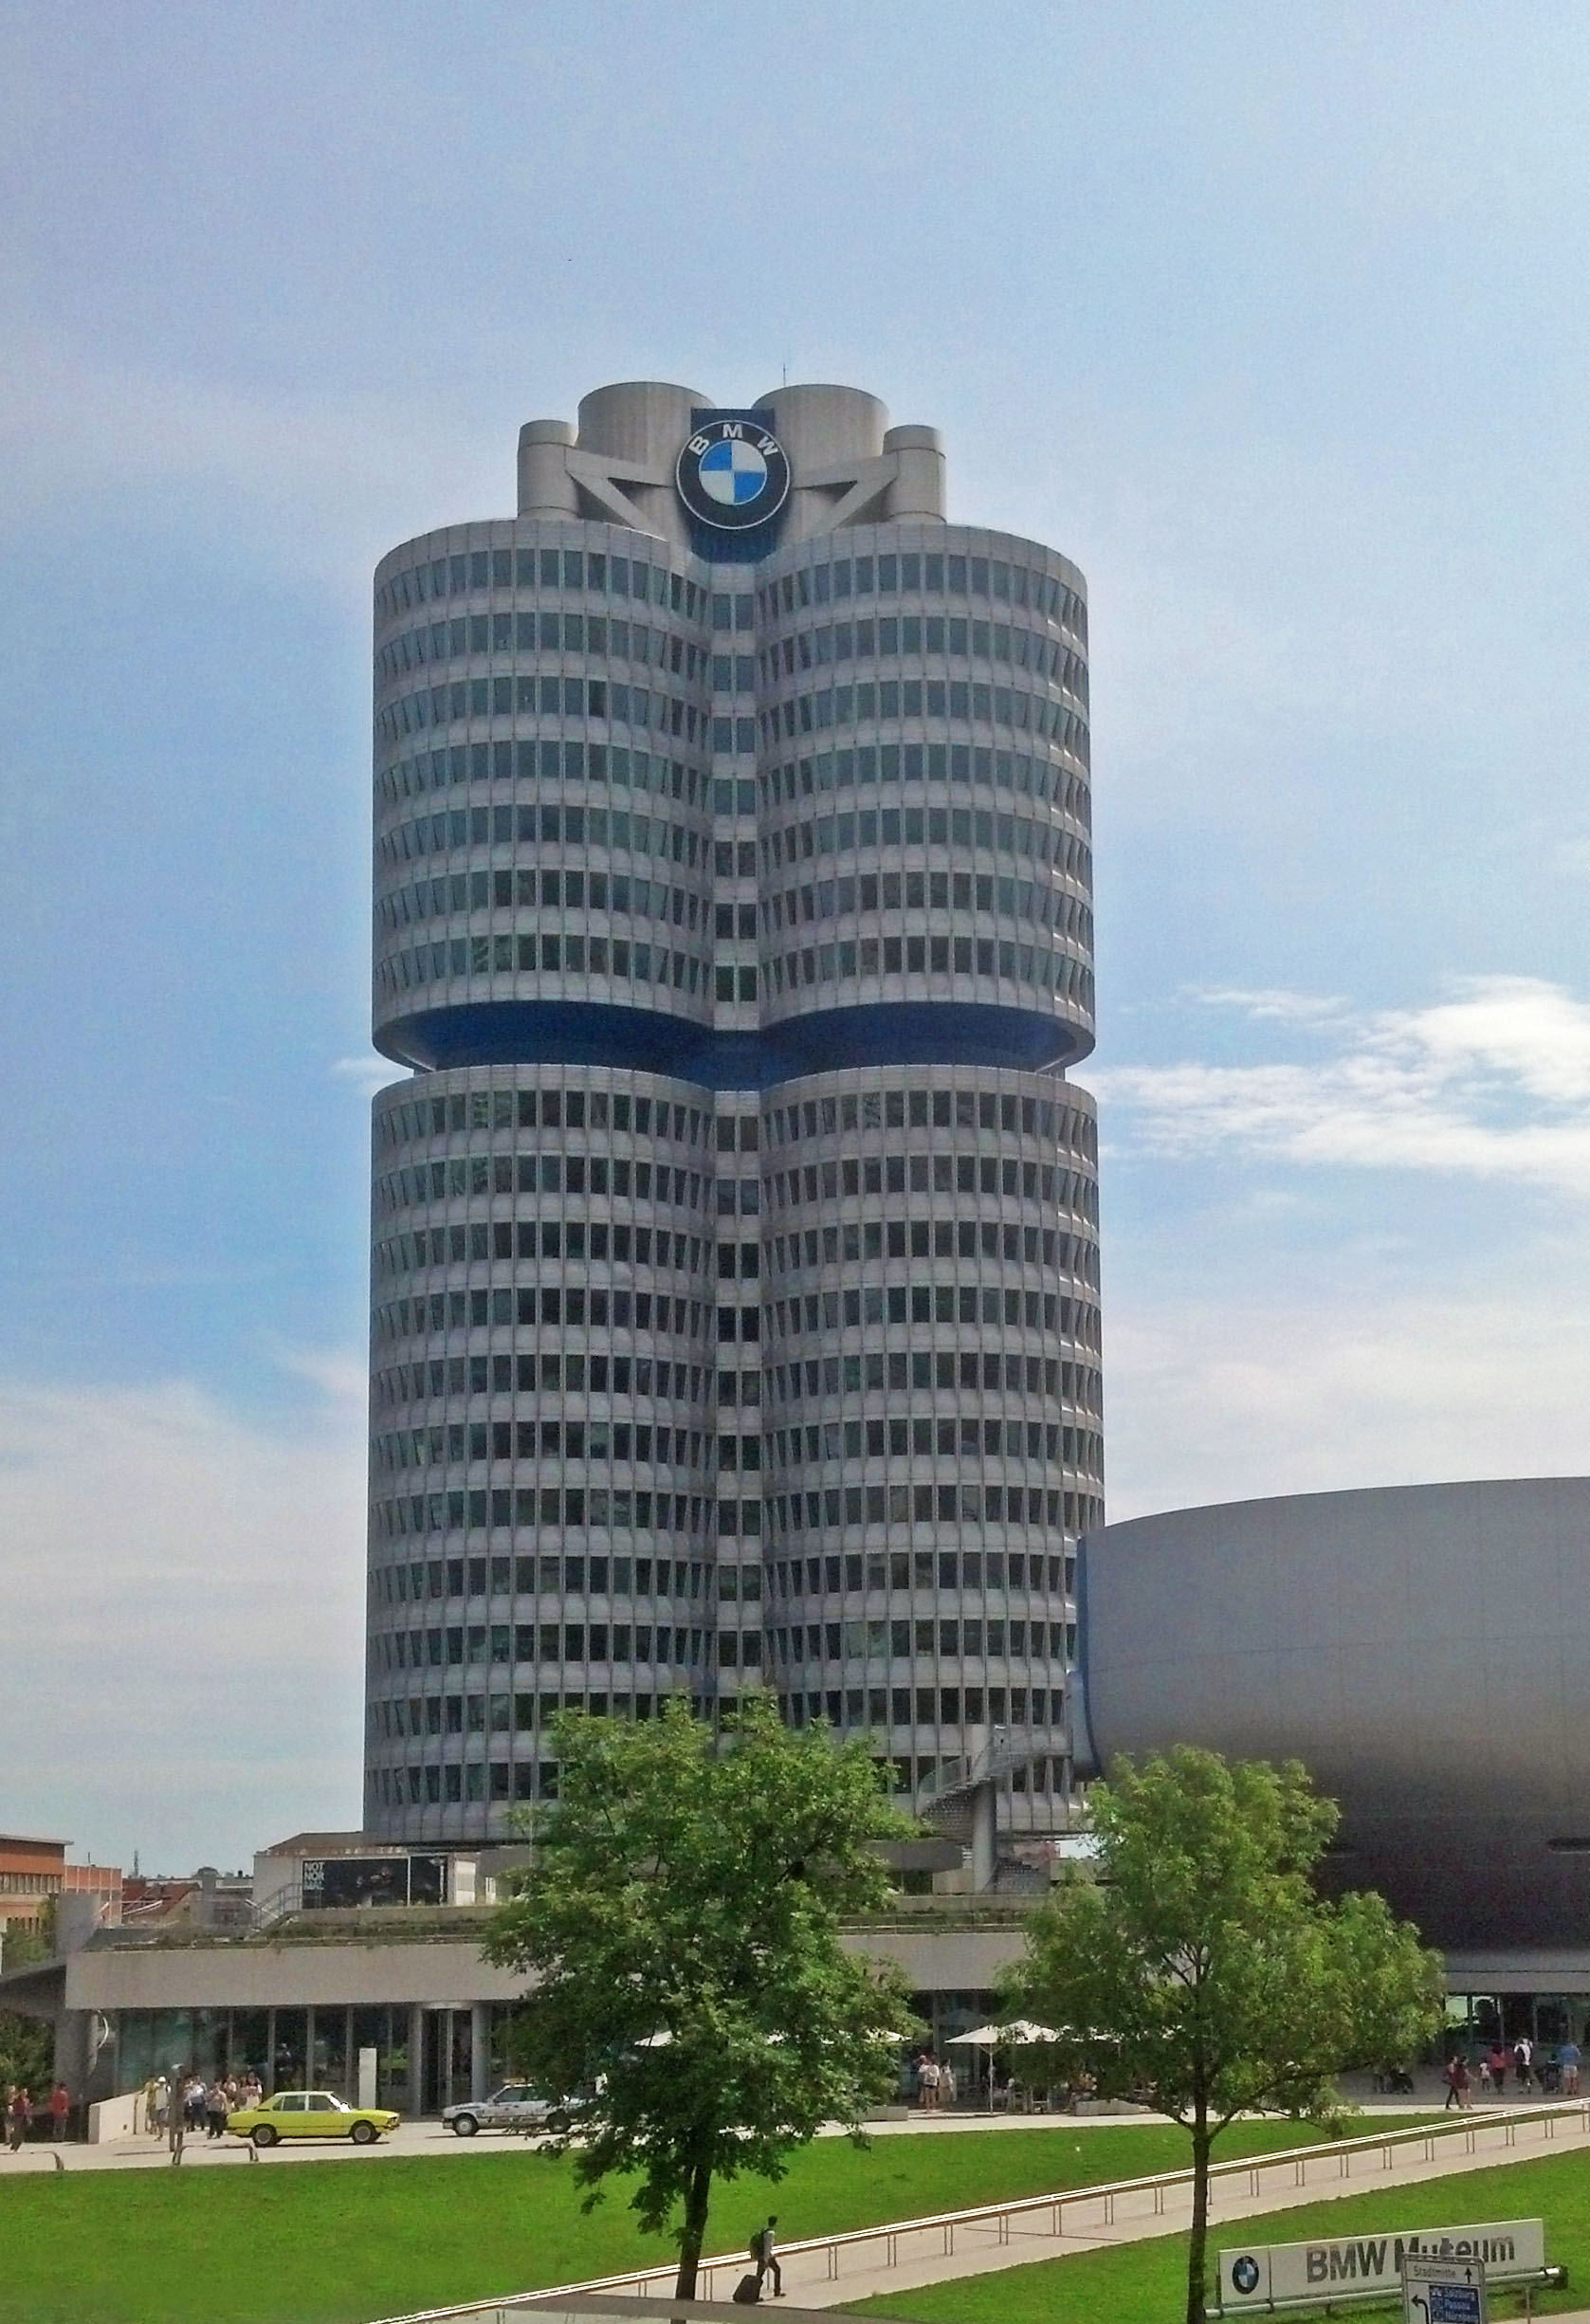 The BMW corporate headquarters located north of Munich.